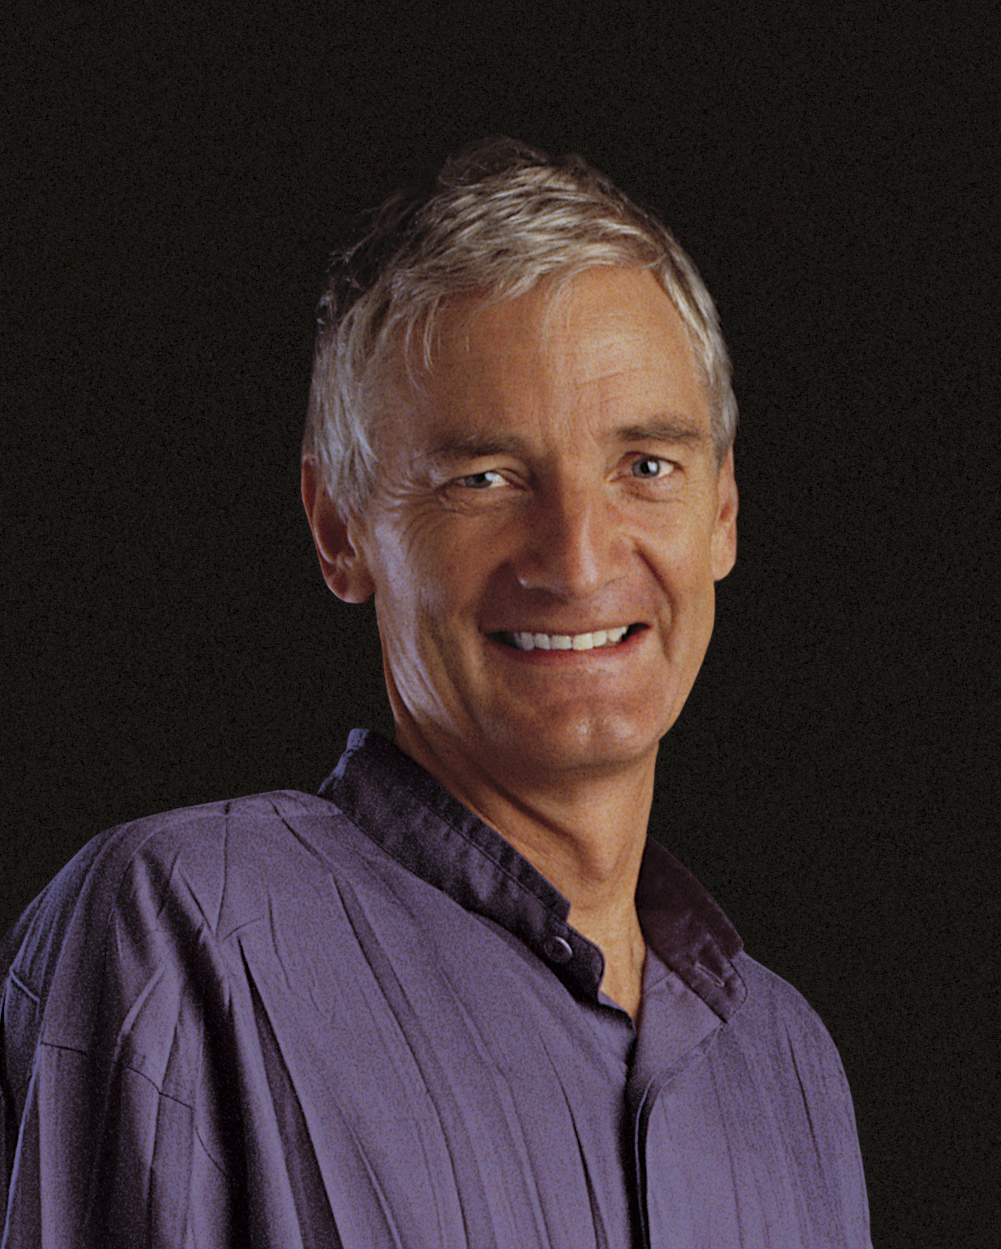 the history of james dyson Dyson ltd is a british technology company established by james dyson in 1991 it designs and manufactures household appliances such as vacuum cleaners, hand dryers, bladeless fans, heaters and hair dryers as of february 2017, dyson had more than 8,500 employees worldwide.